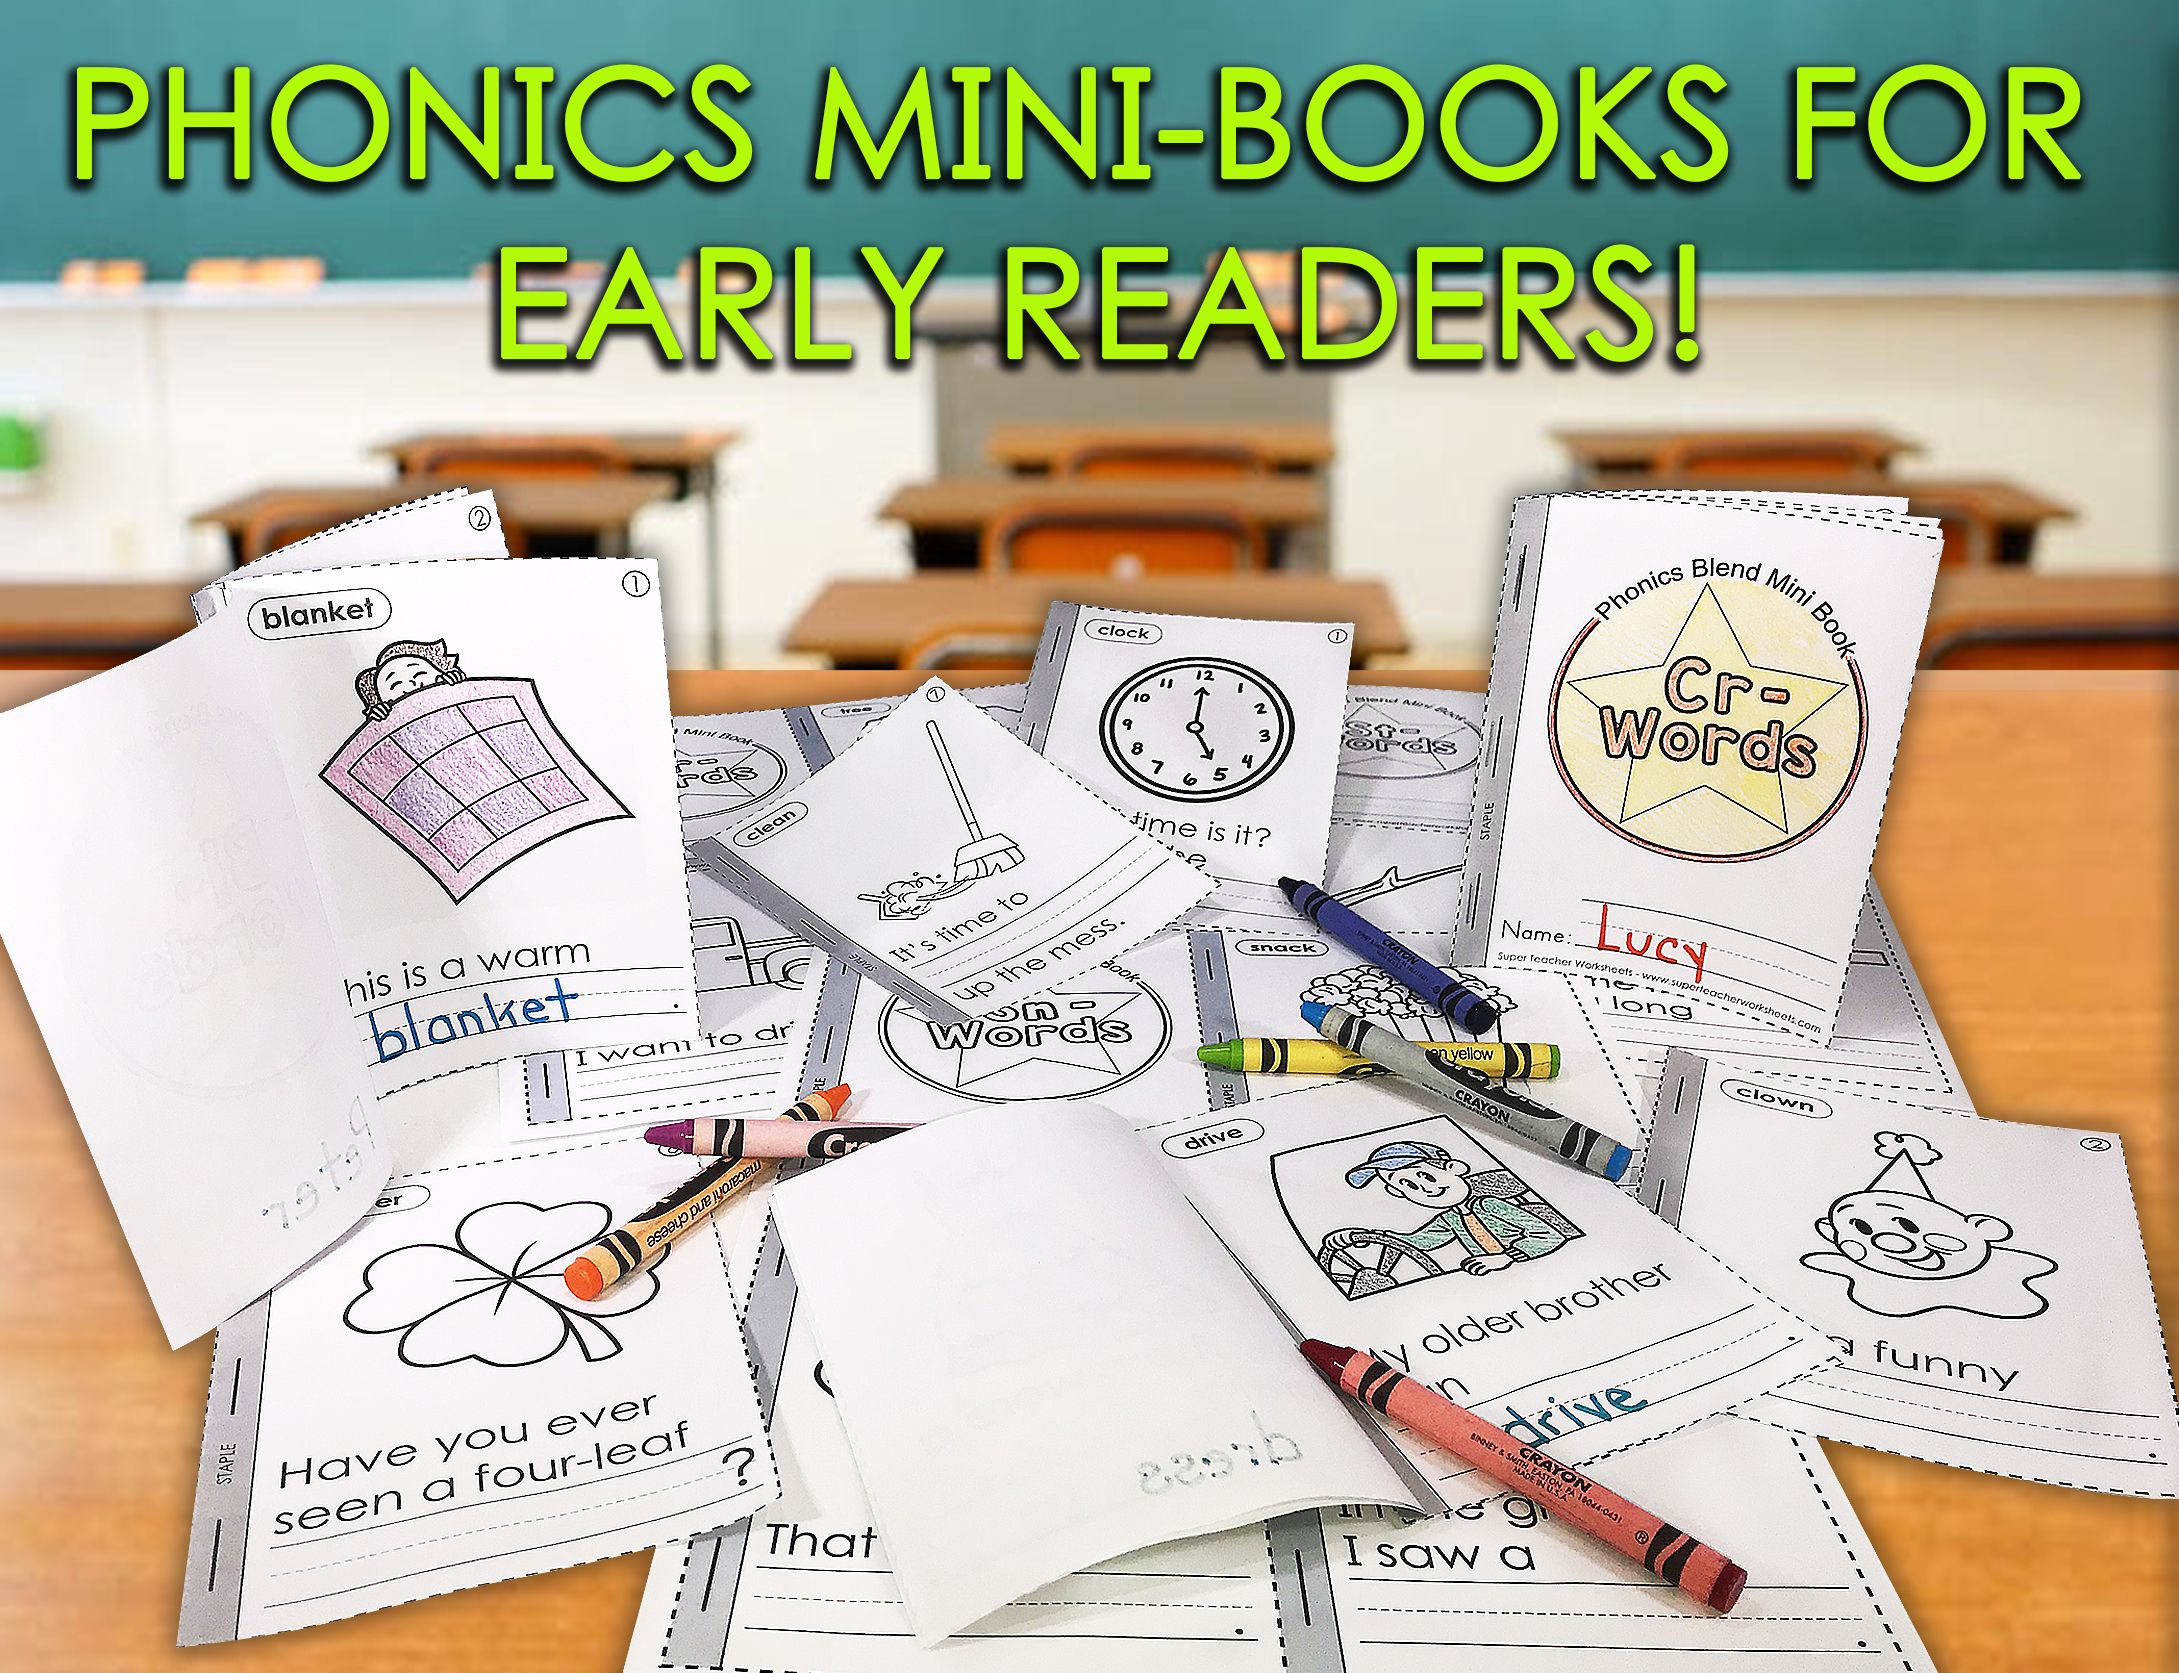 Minibooks Are A Fun Way To Practice Reading Visit Our Mini Books Collection Today And You Ll